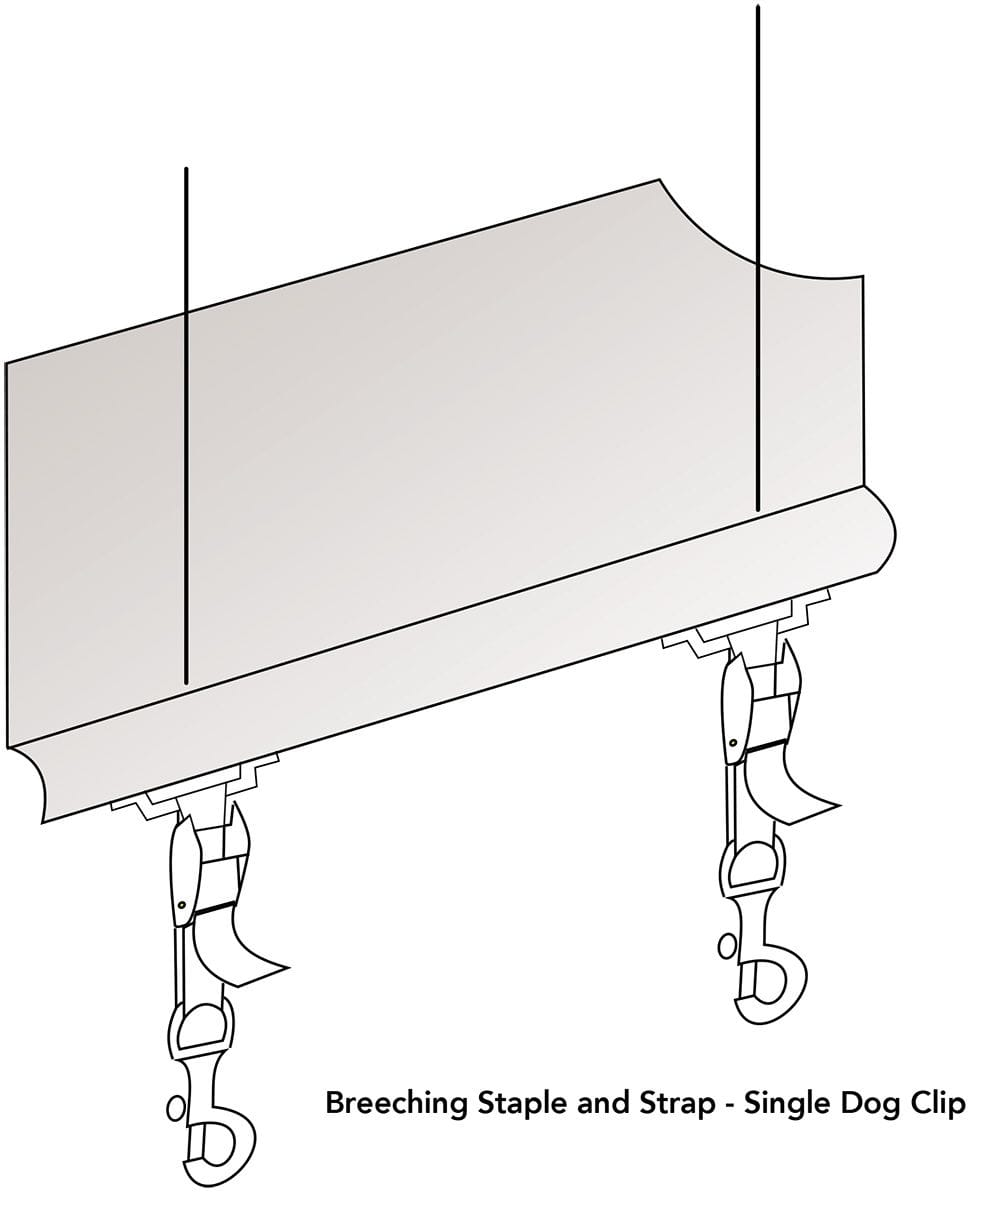 Straight Drop Awning - Breeching Staple and Strap - Single Dog Clip - Diagram